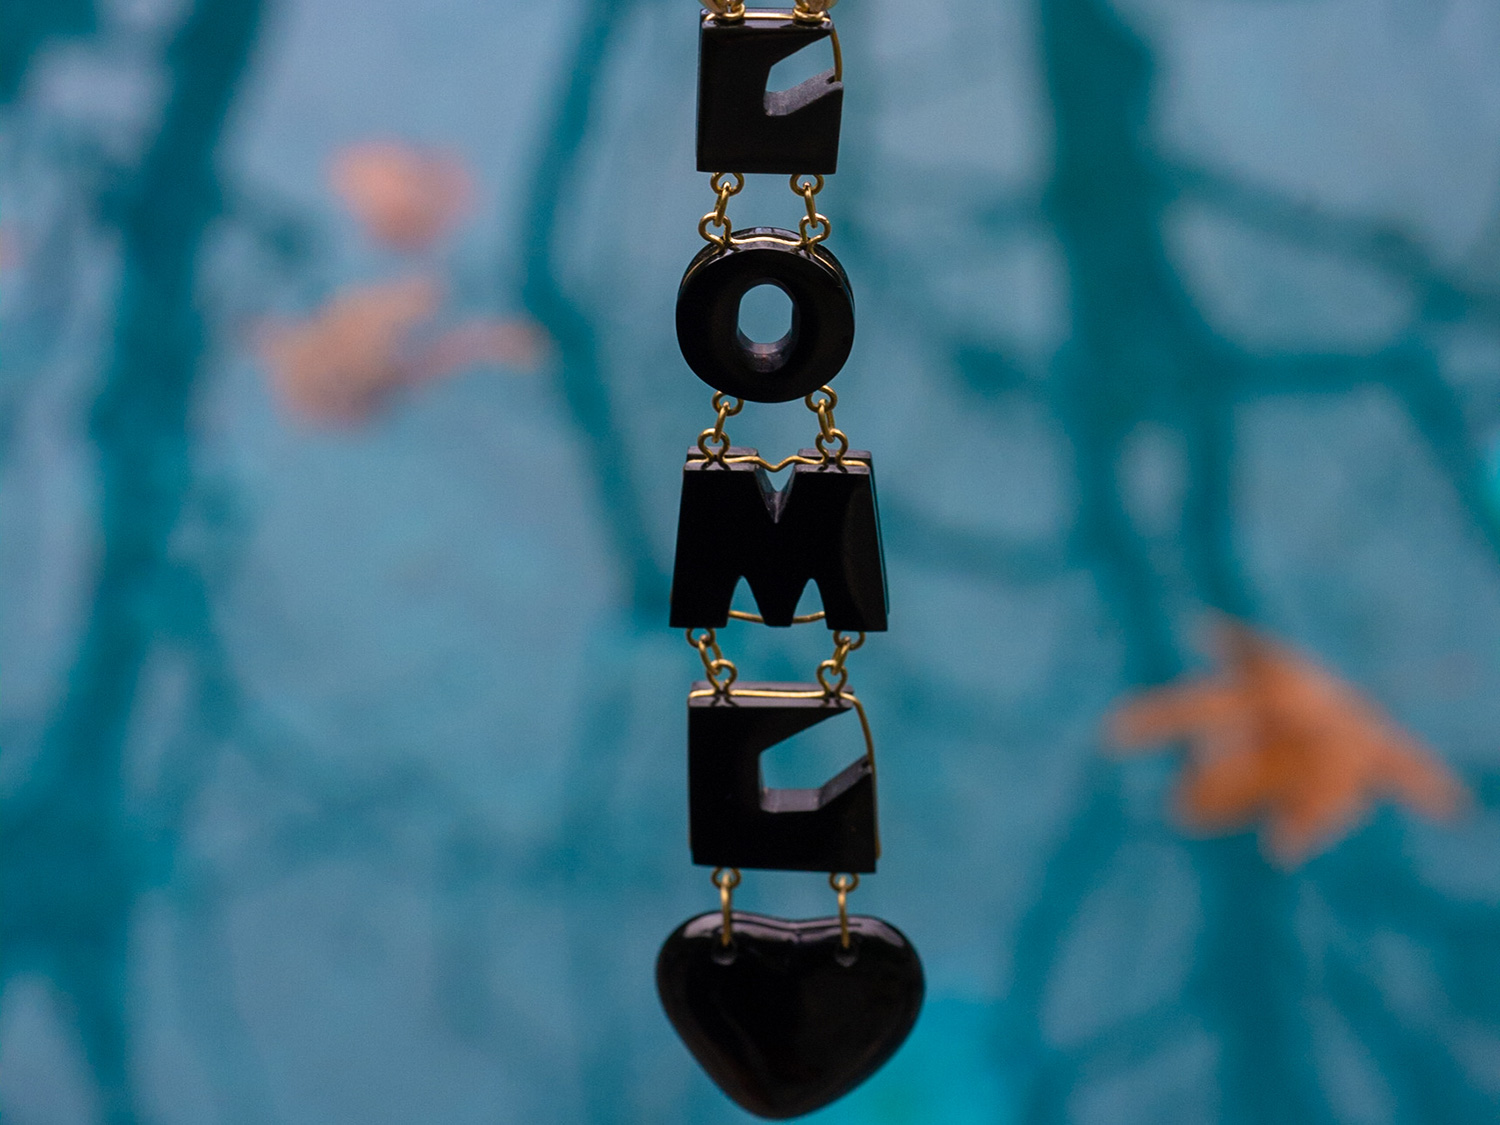 Special black jade necklace contains the client's hidden message to their love.